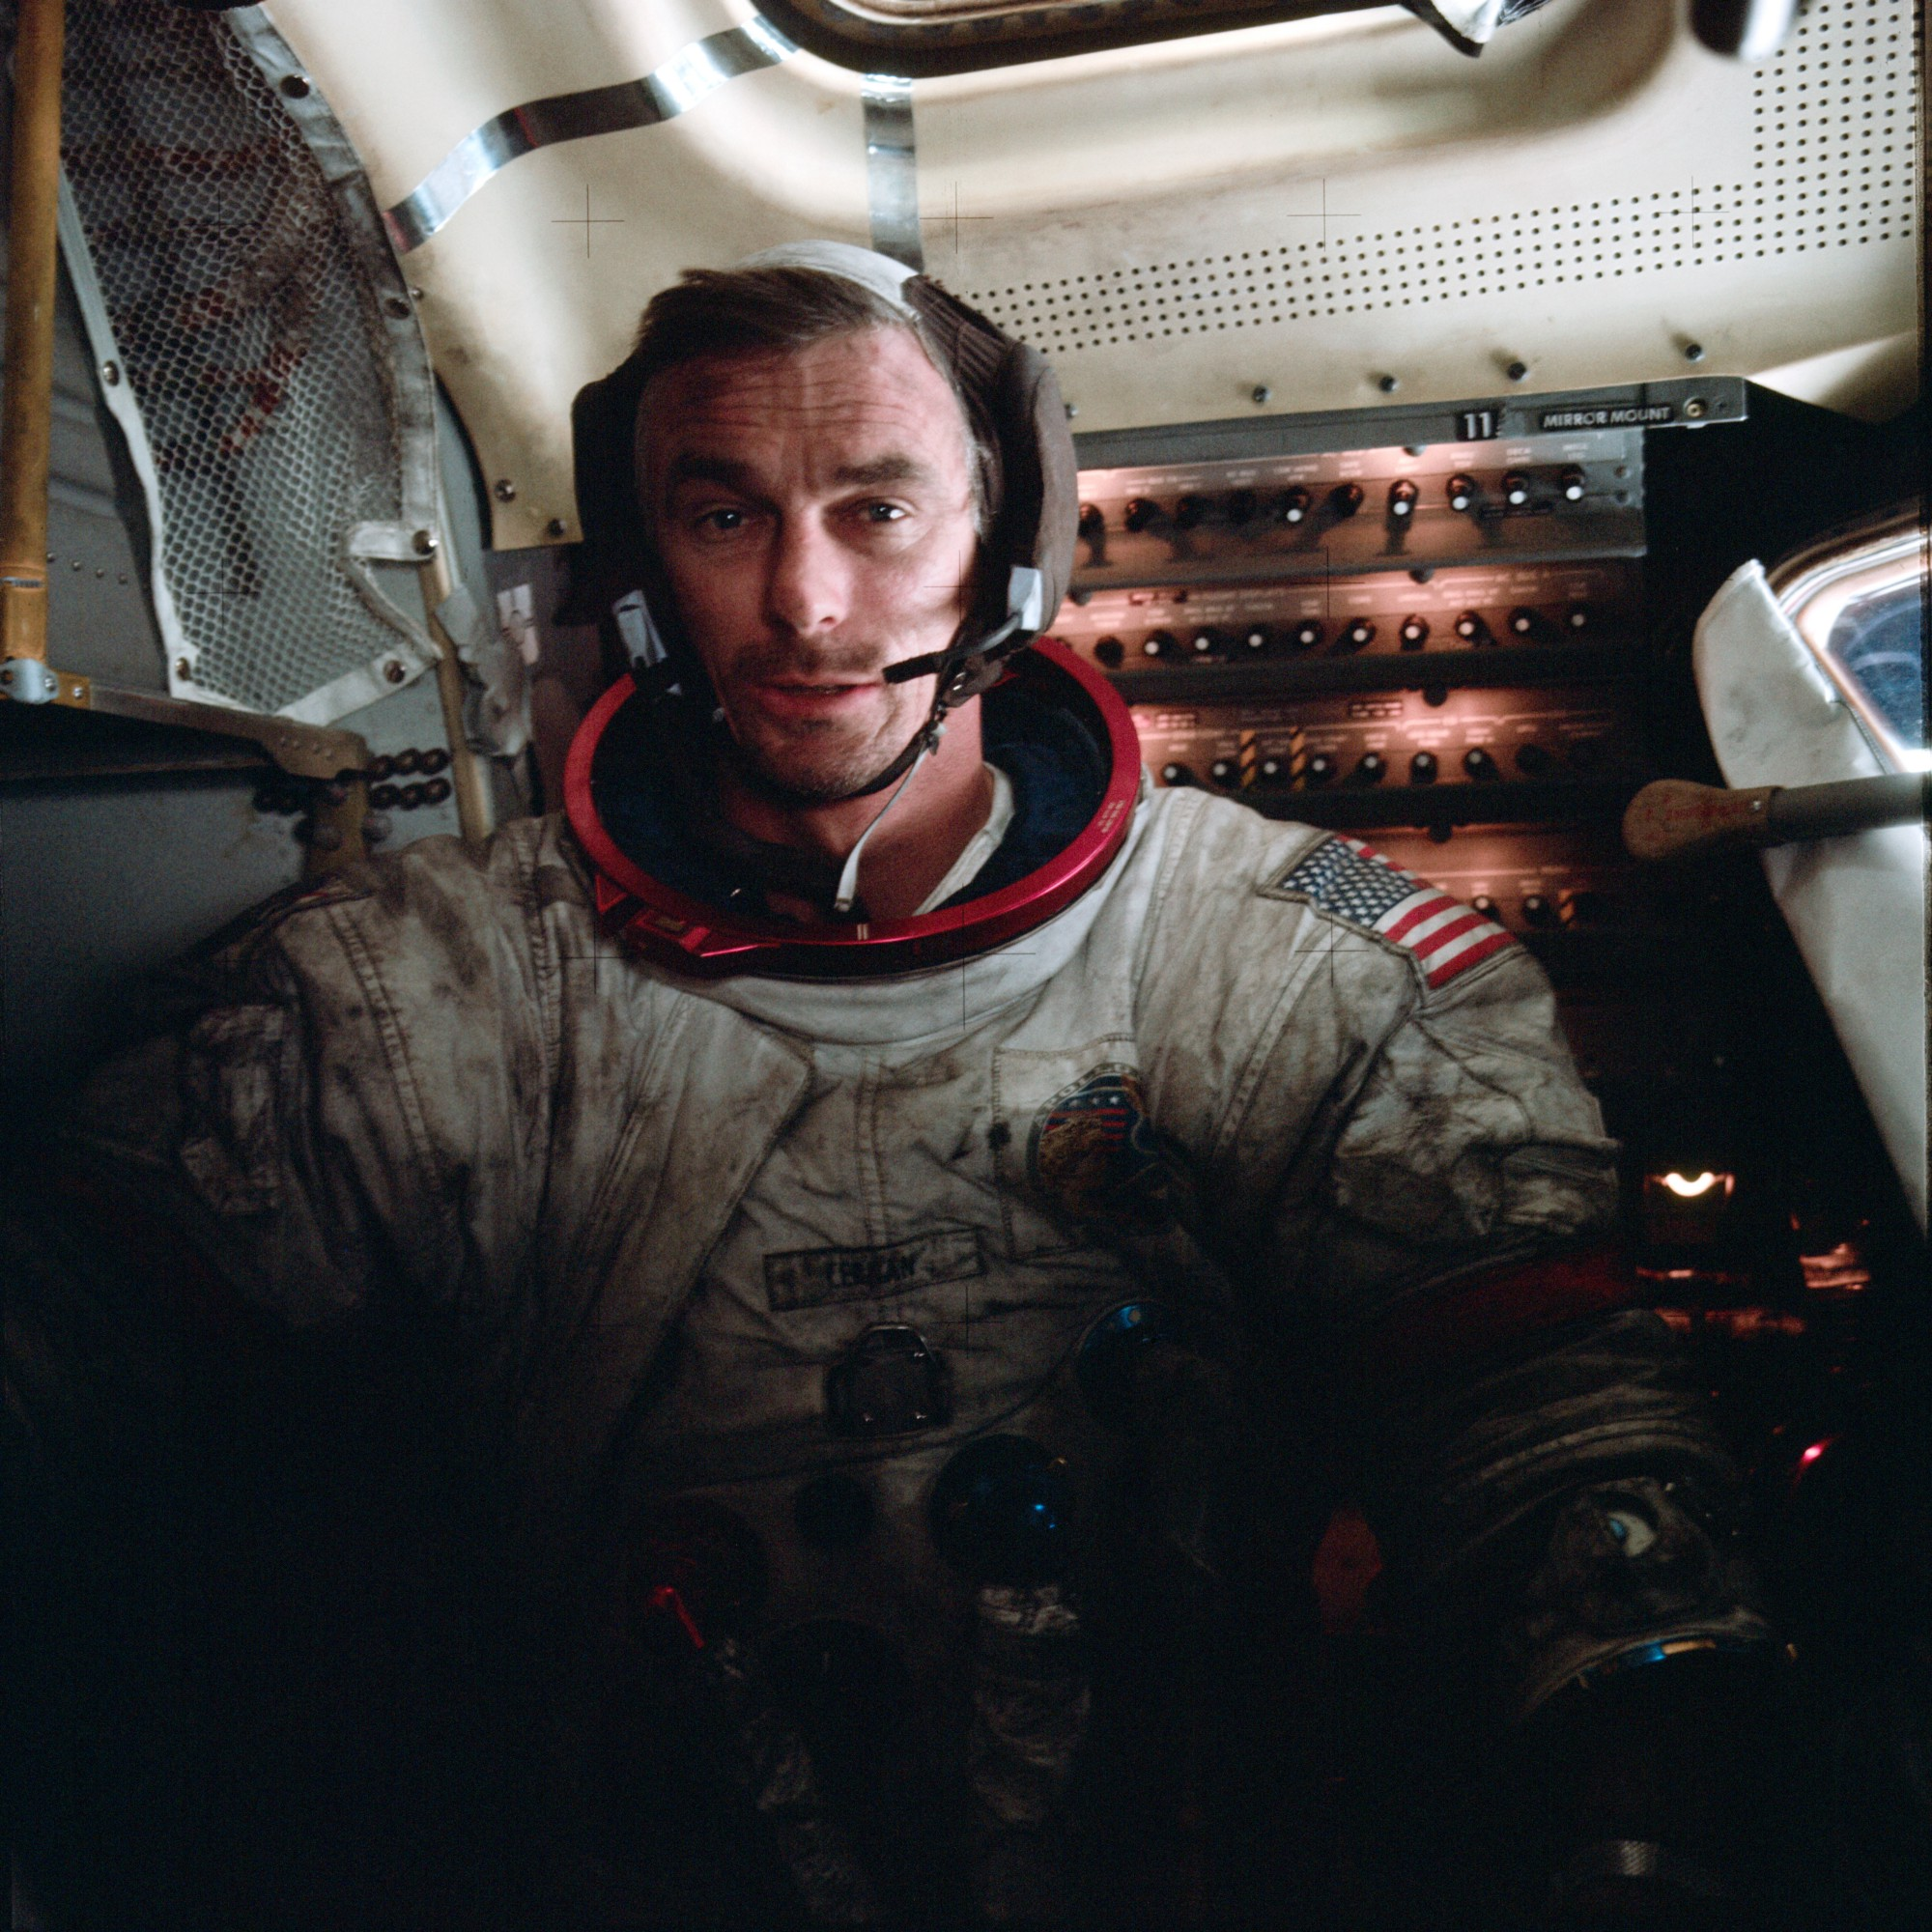 Apollo 17 astronaut Eugene Cernan covered in extraterrestrial dust, which makes his white suit look black with dirt from the waist to the shoulders.